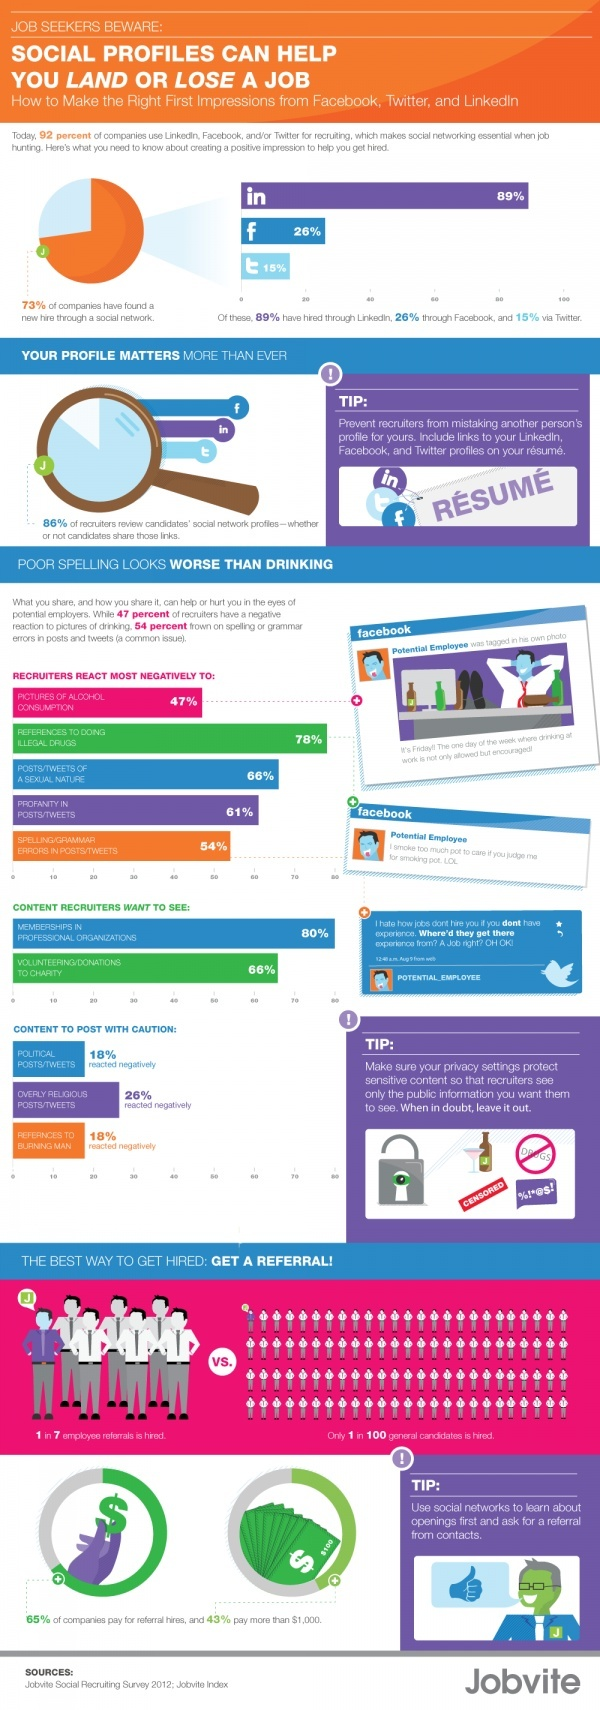 best images about job hunting tips resume tips be careful what you post job hunting socialmedia